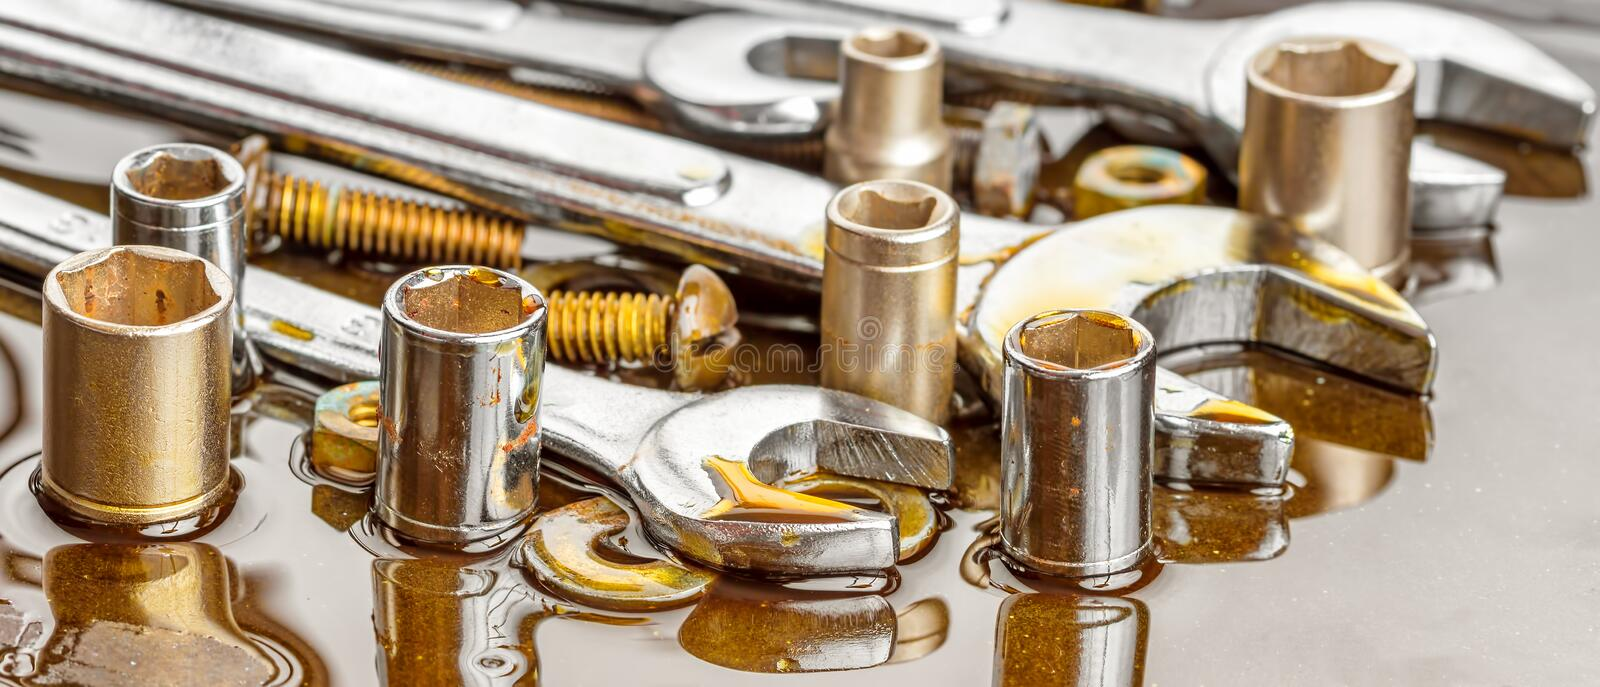 Chrome tools wrenches with grease stains stock photo